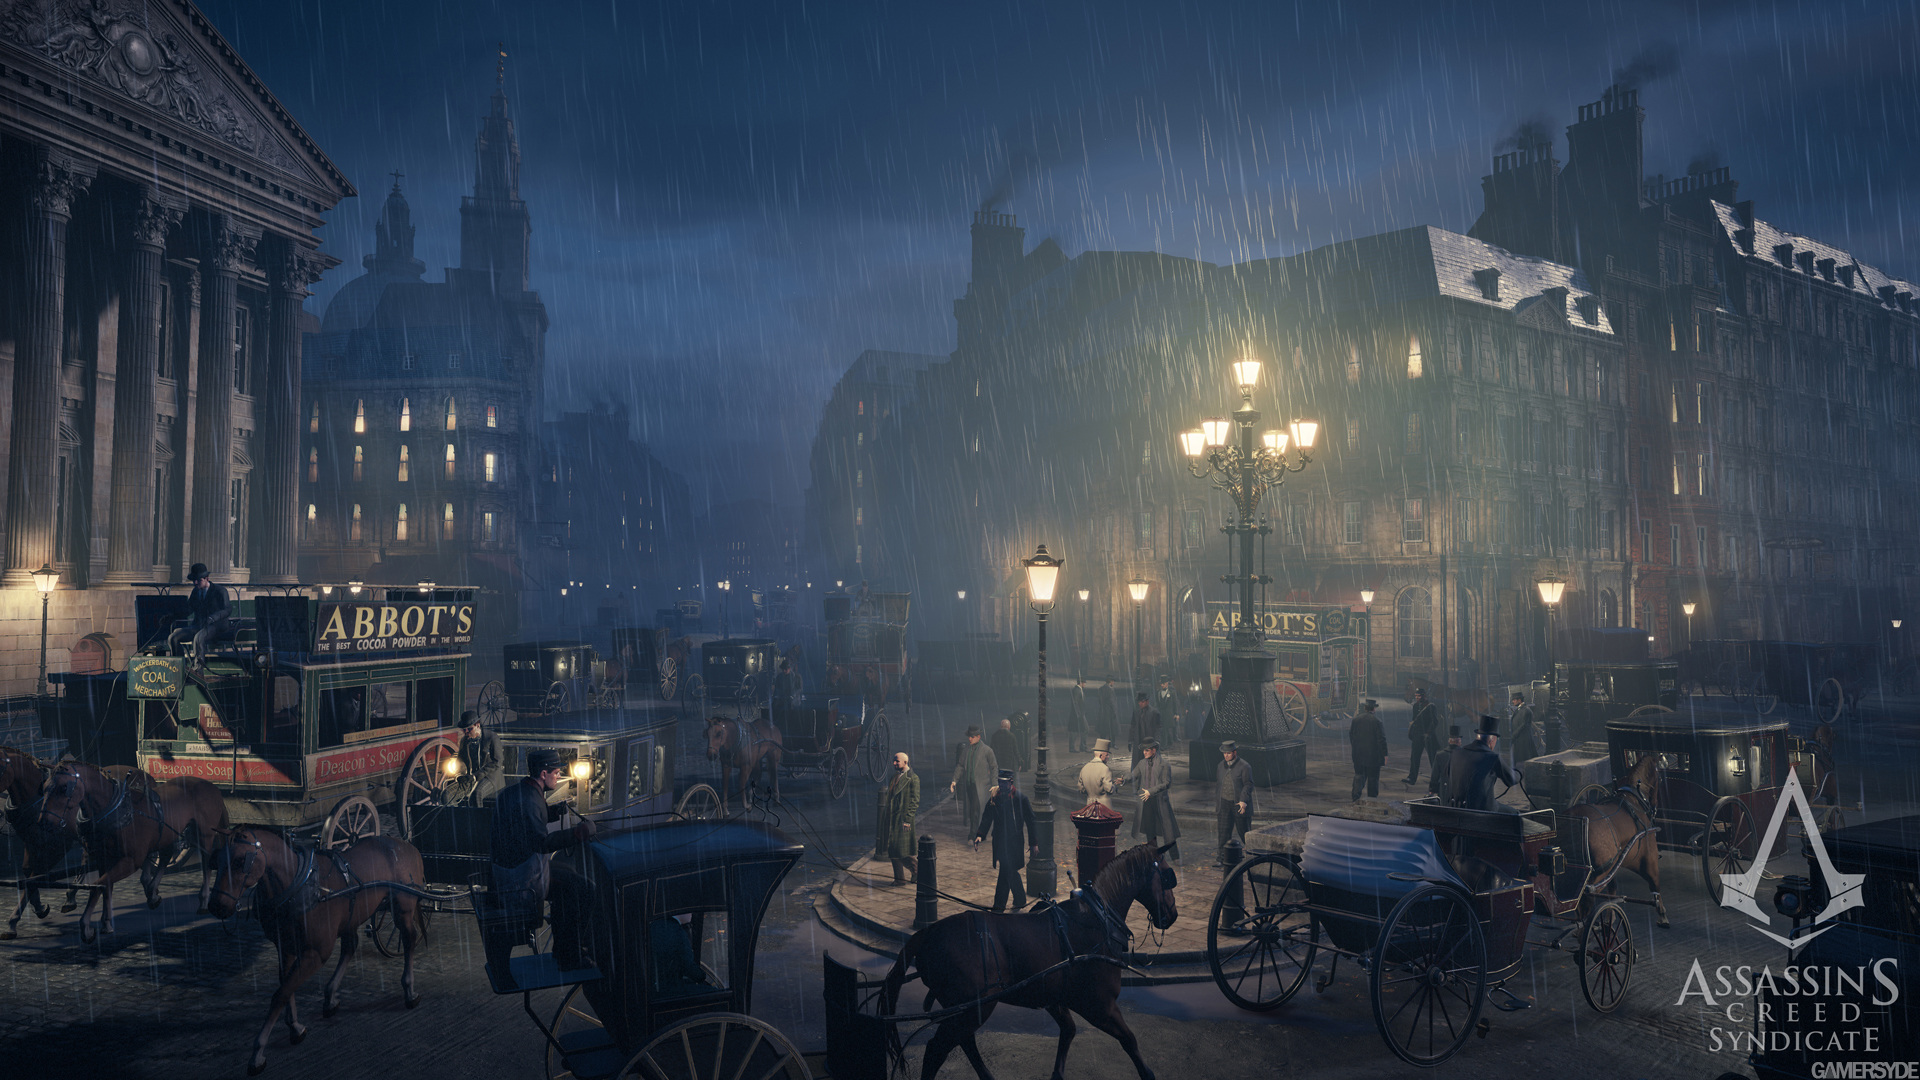 image_assassin_s_creed_syndicate-28271-3228_0004